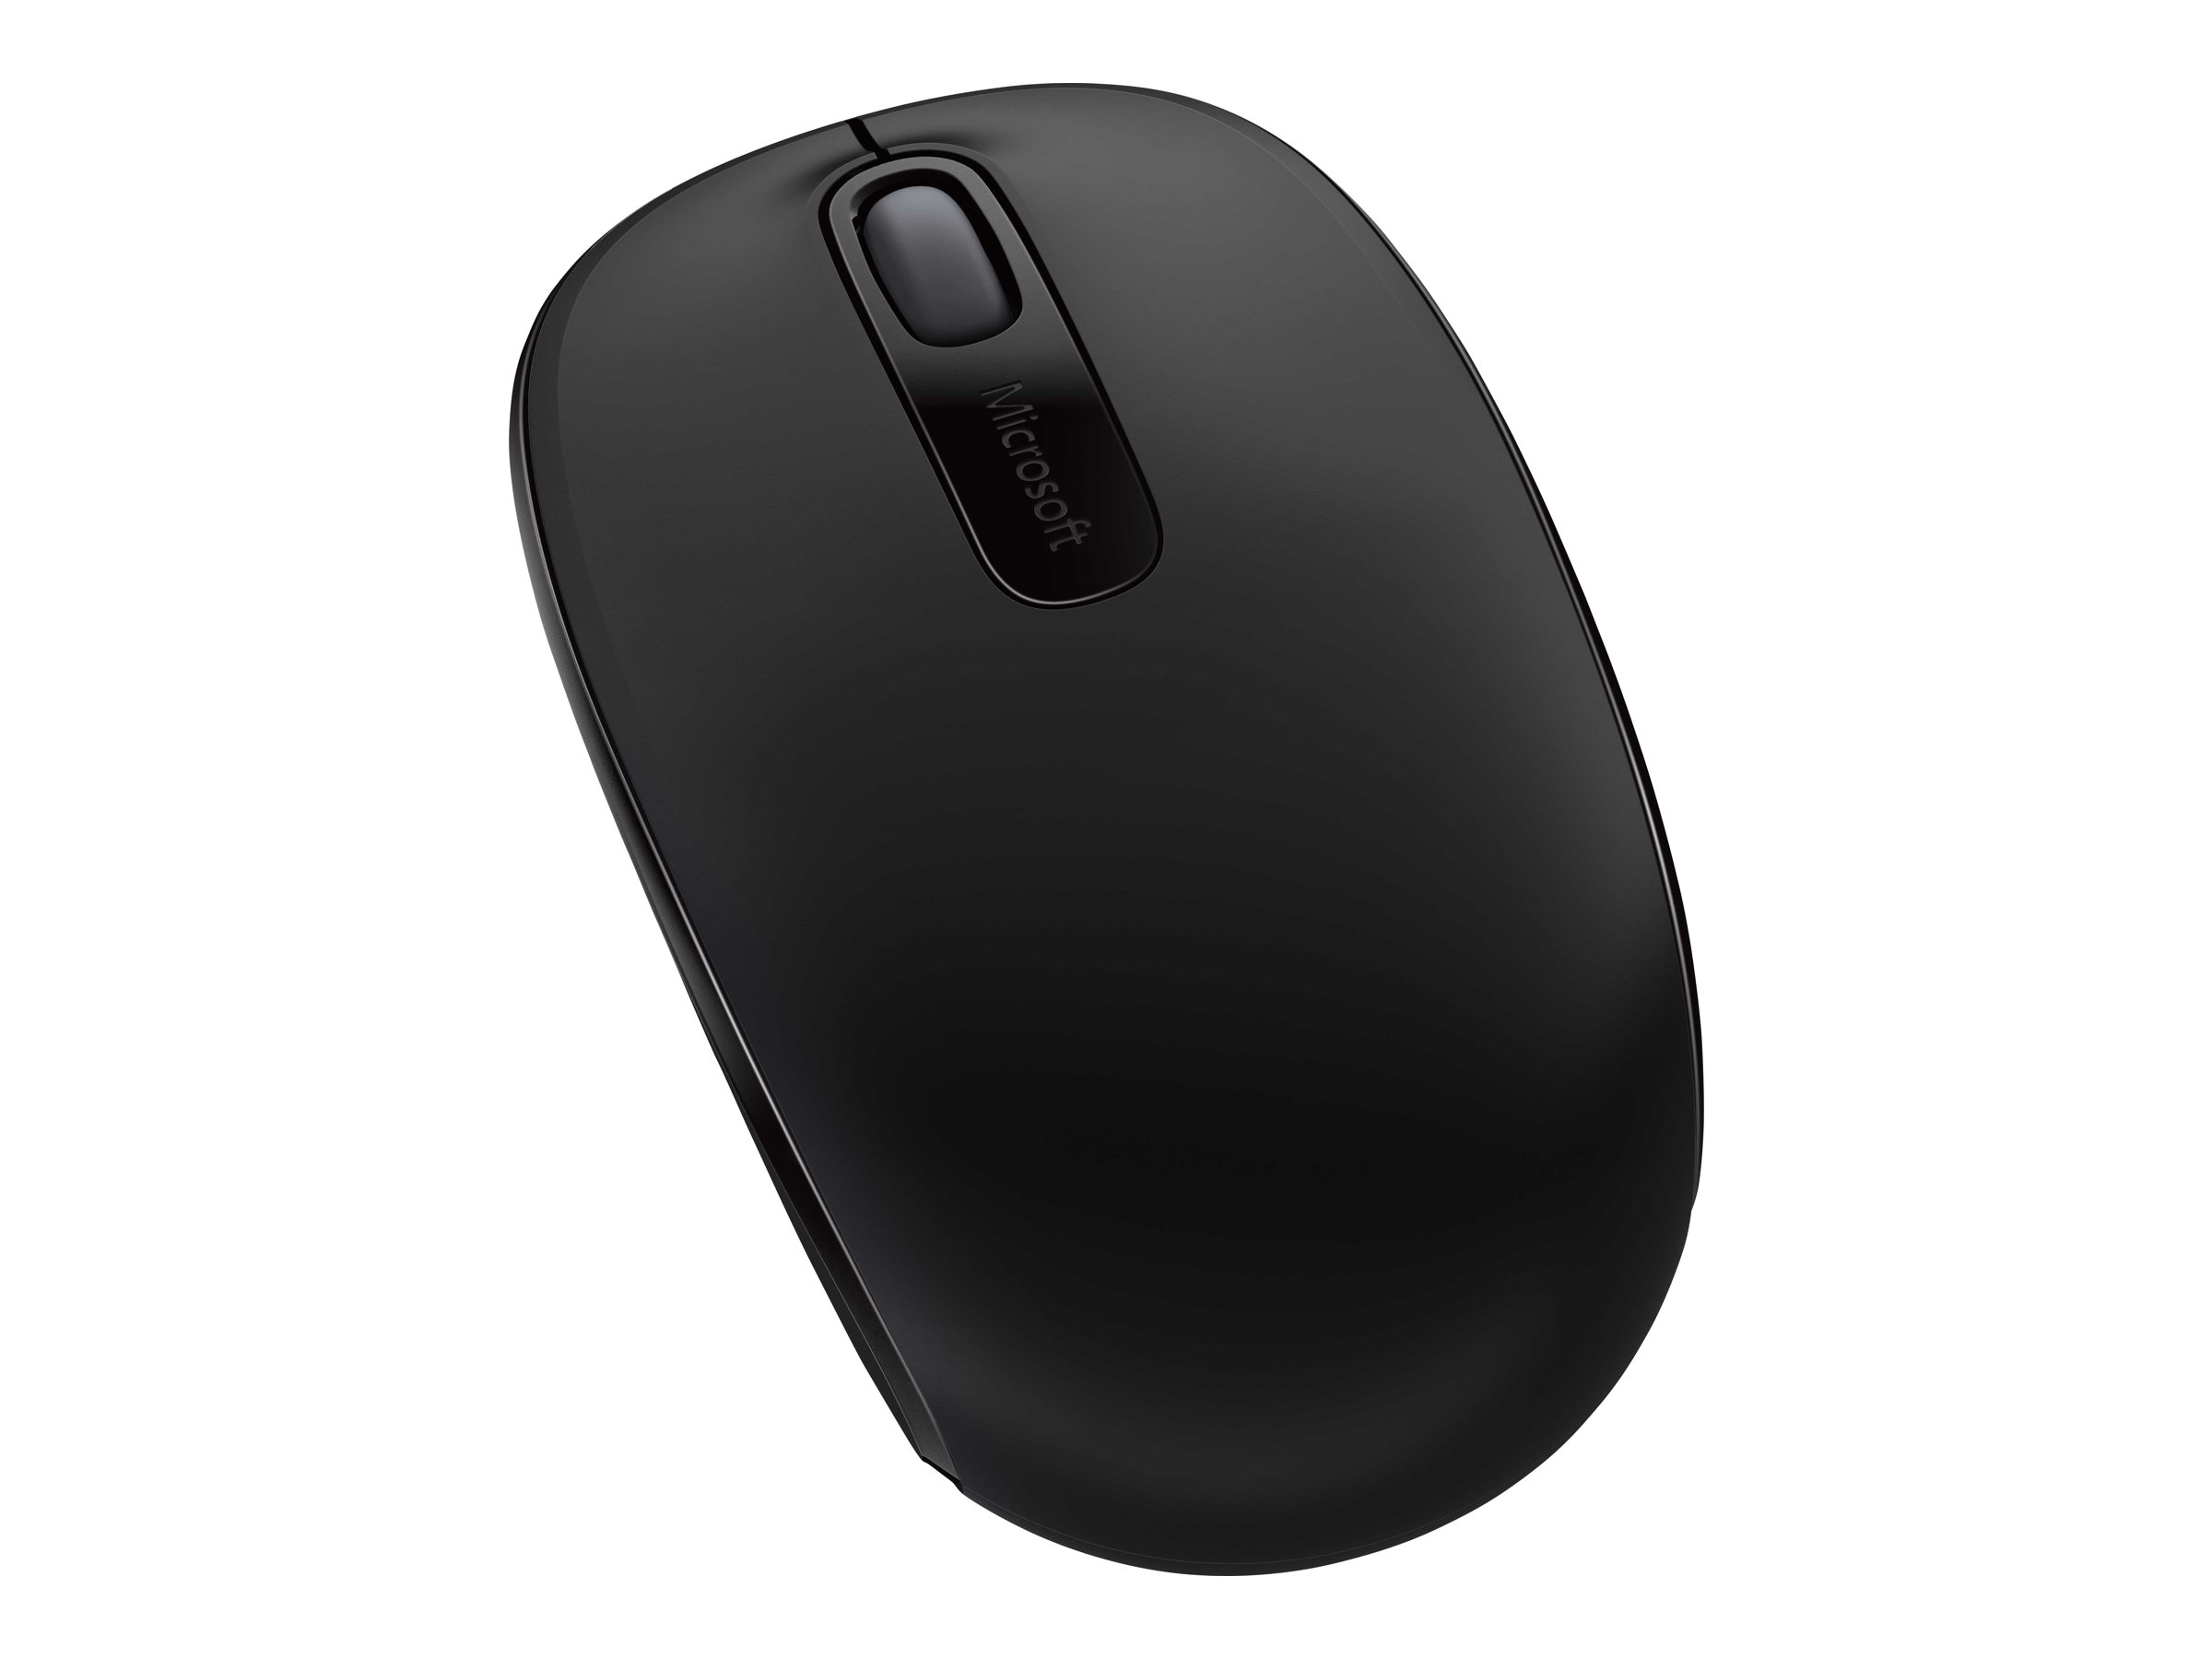 Microsoft Wireless Mobile Mouse 1850 for Business - mouse - 2.4 GHz - black